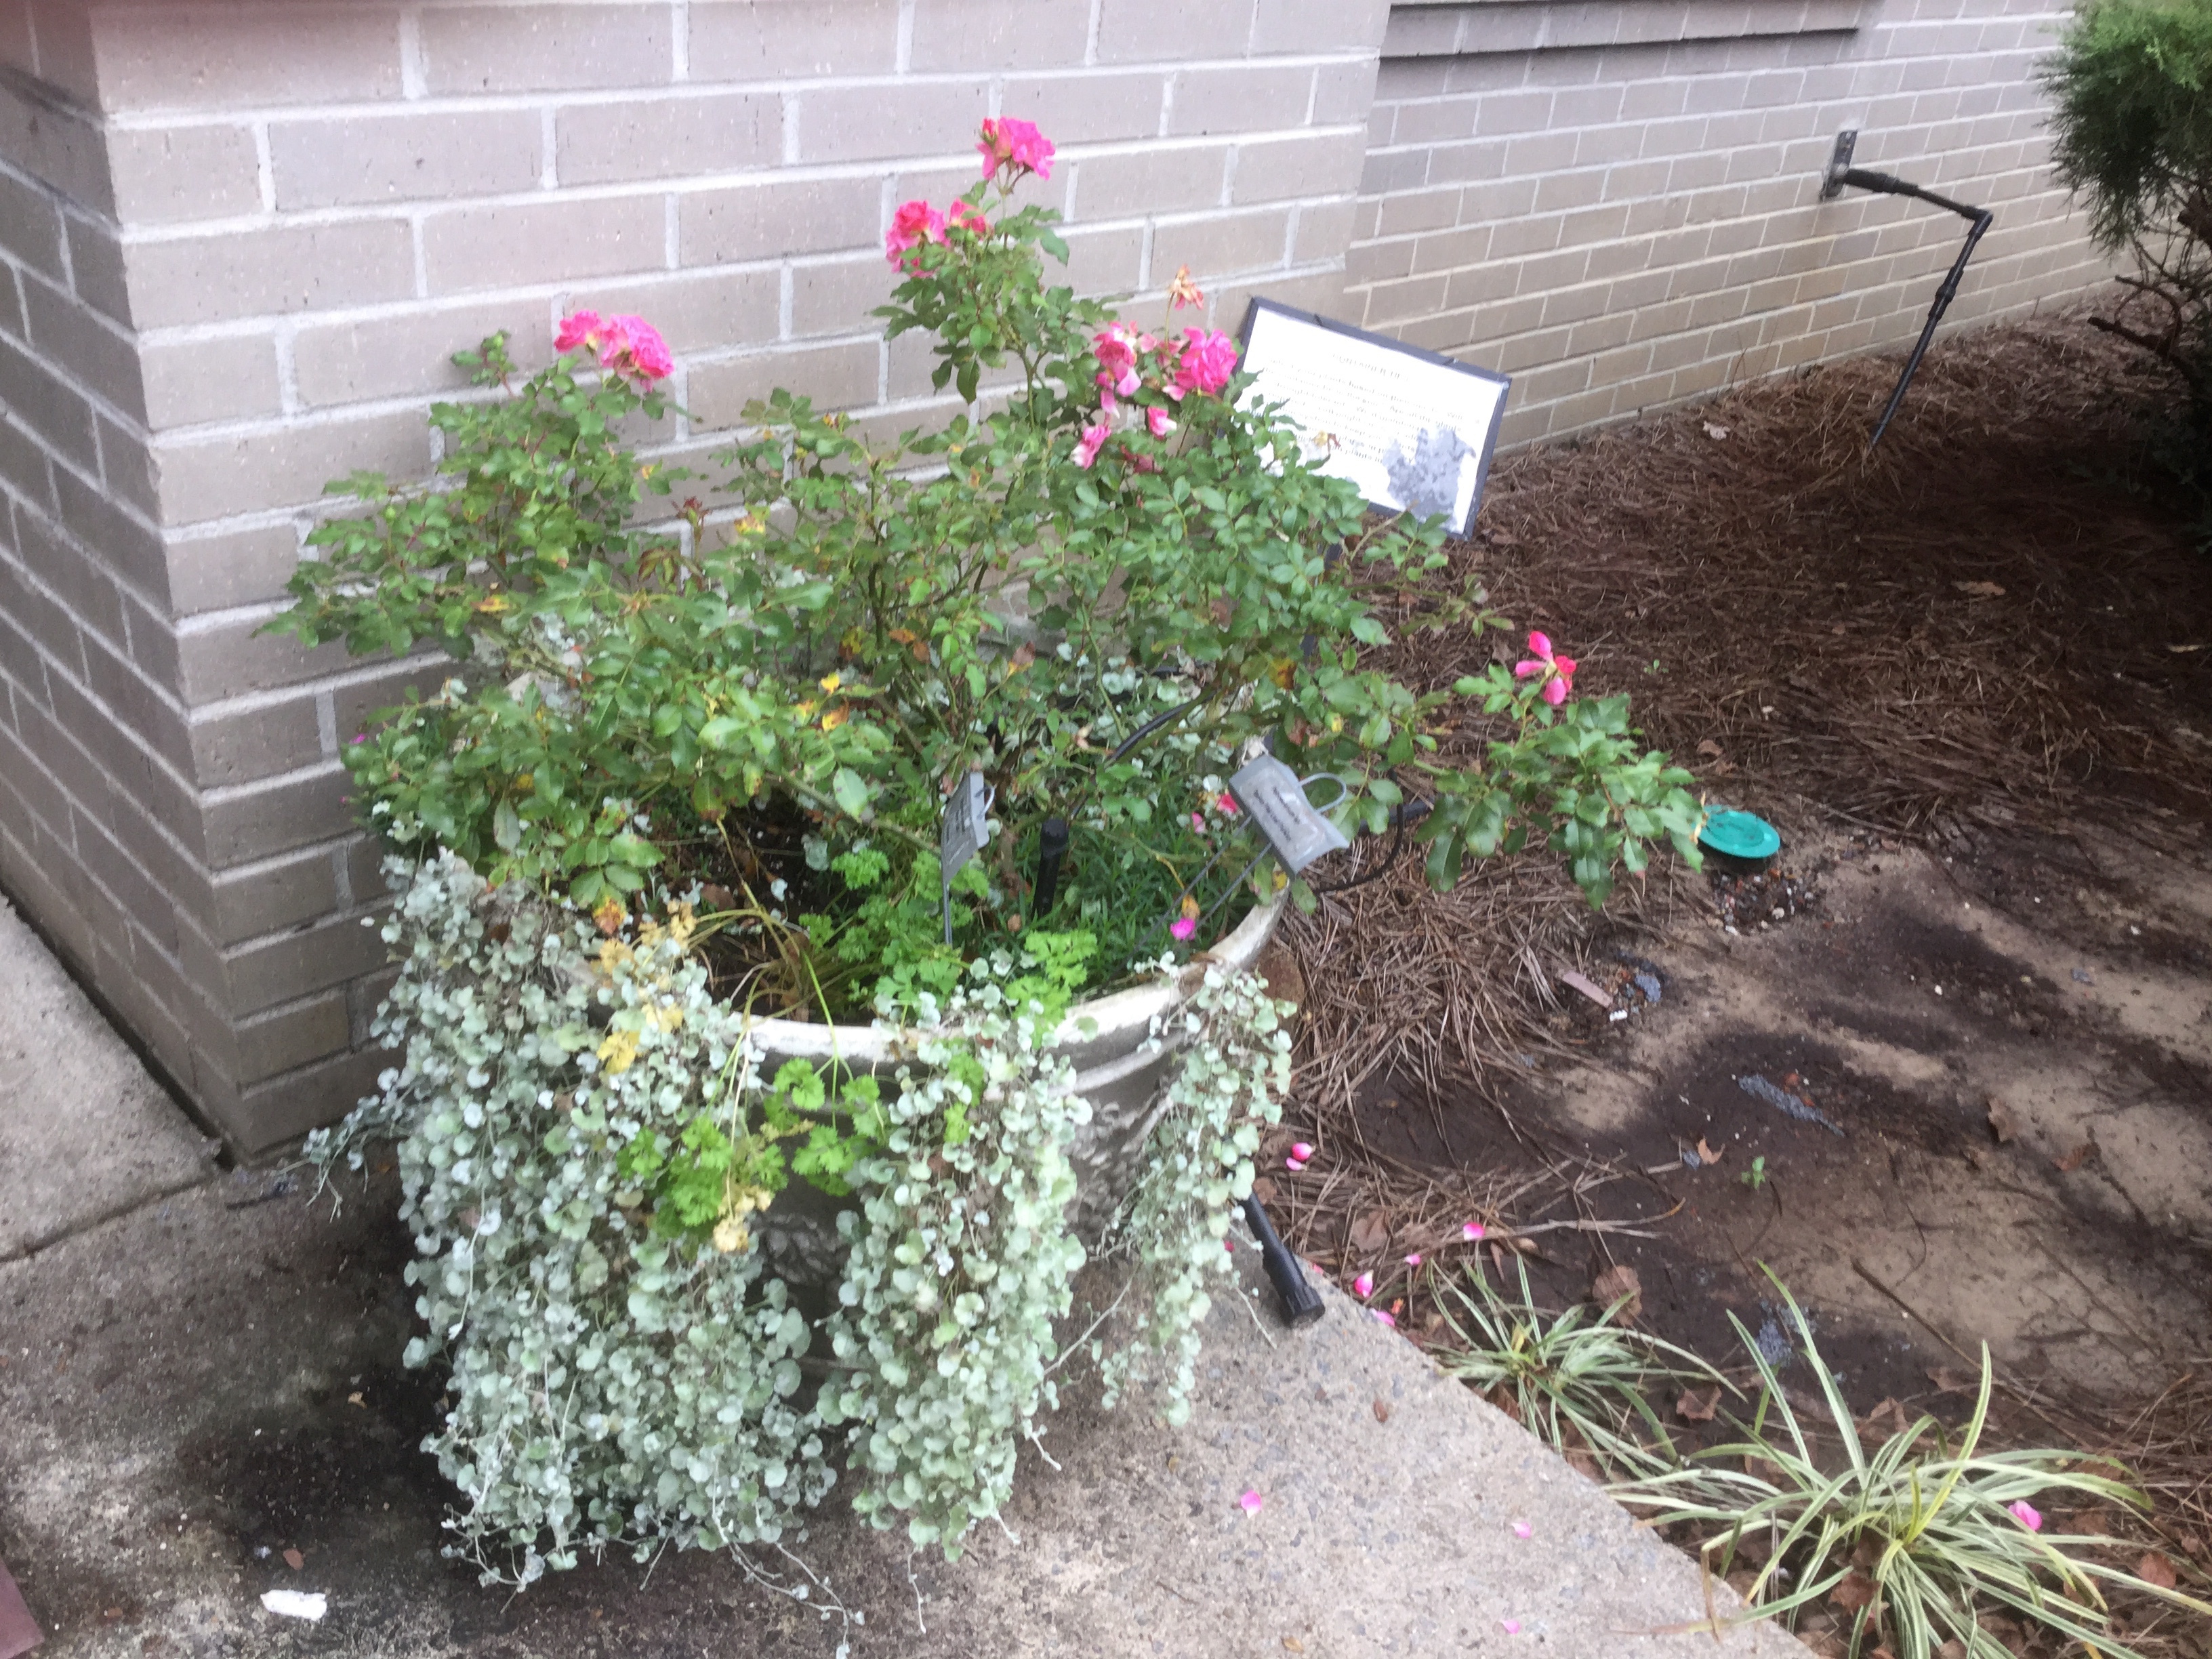 Container Gardens | North Carolina Cooperative Extension